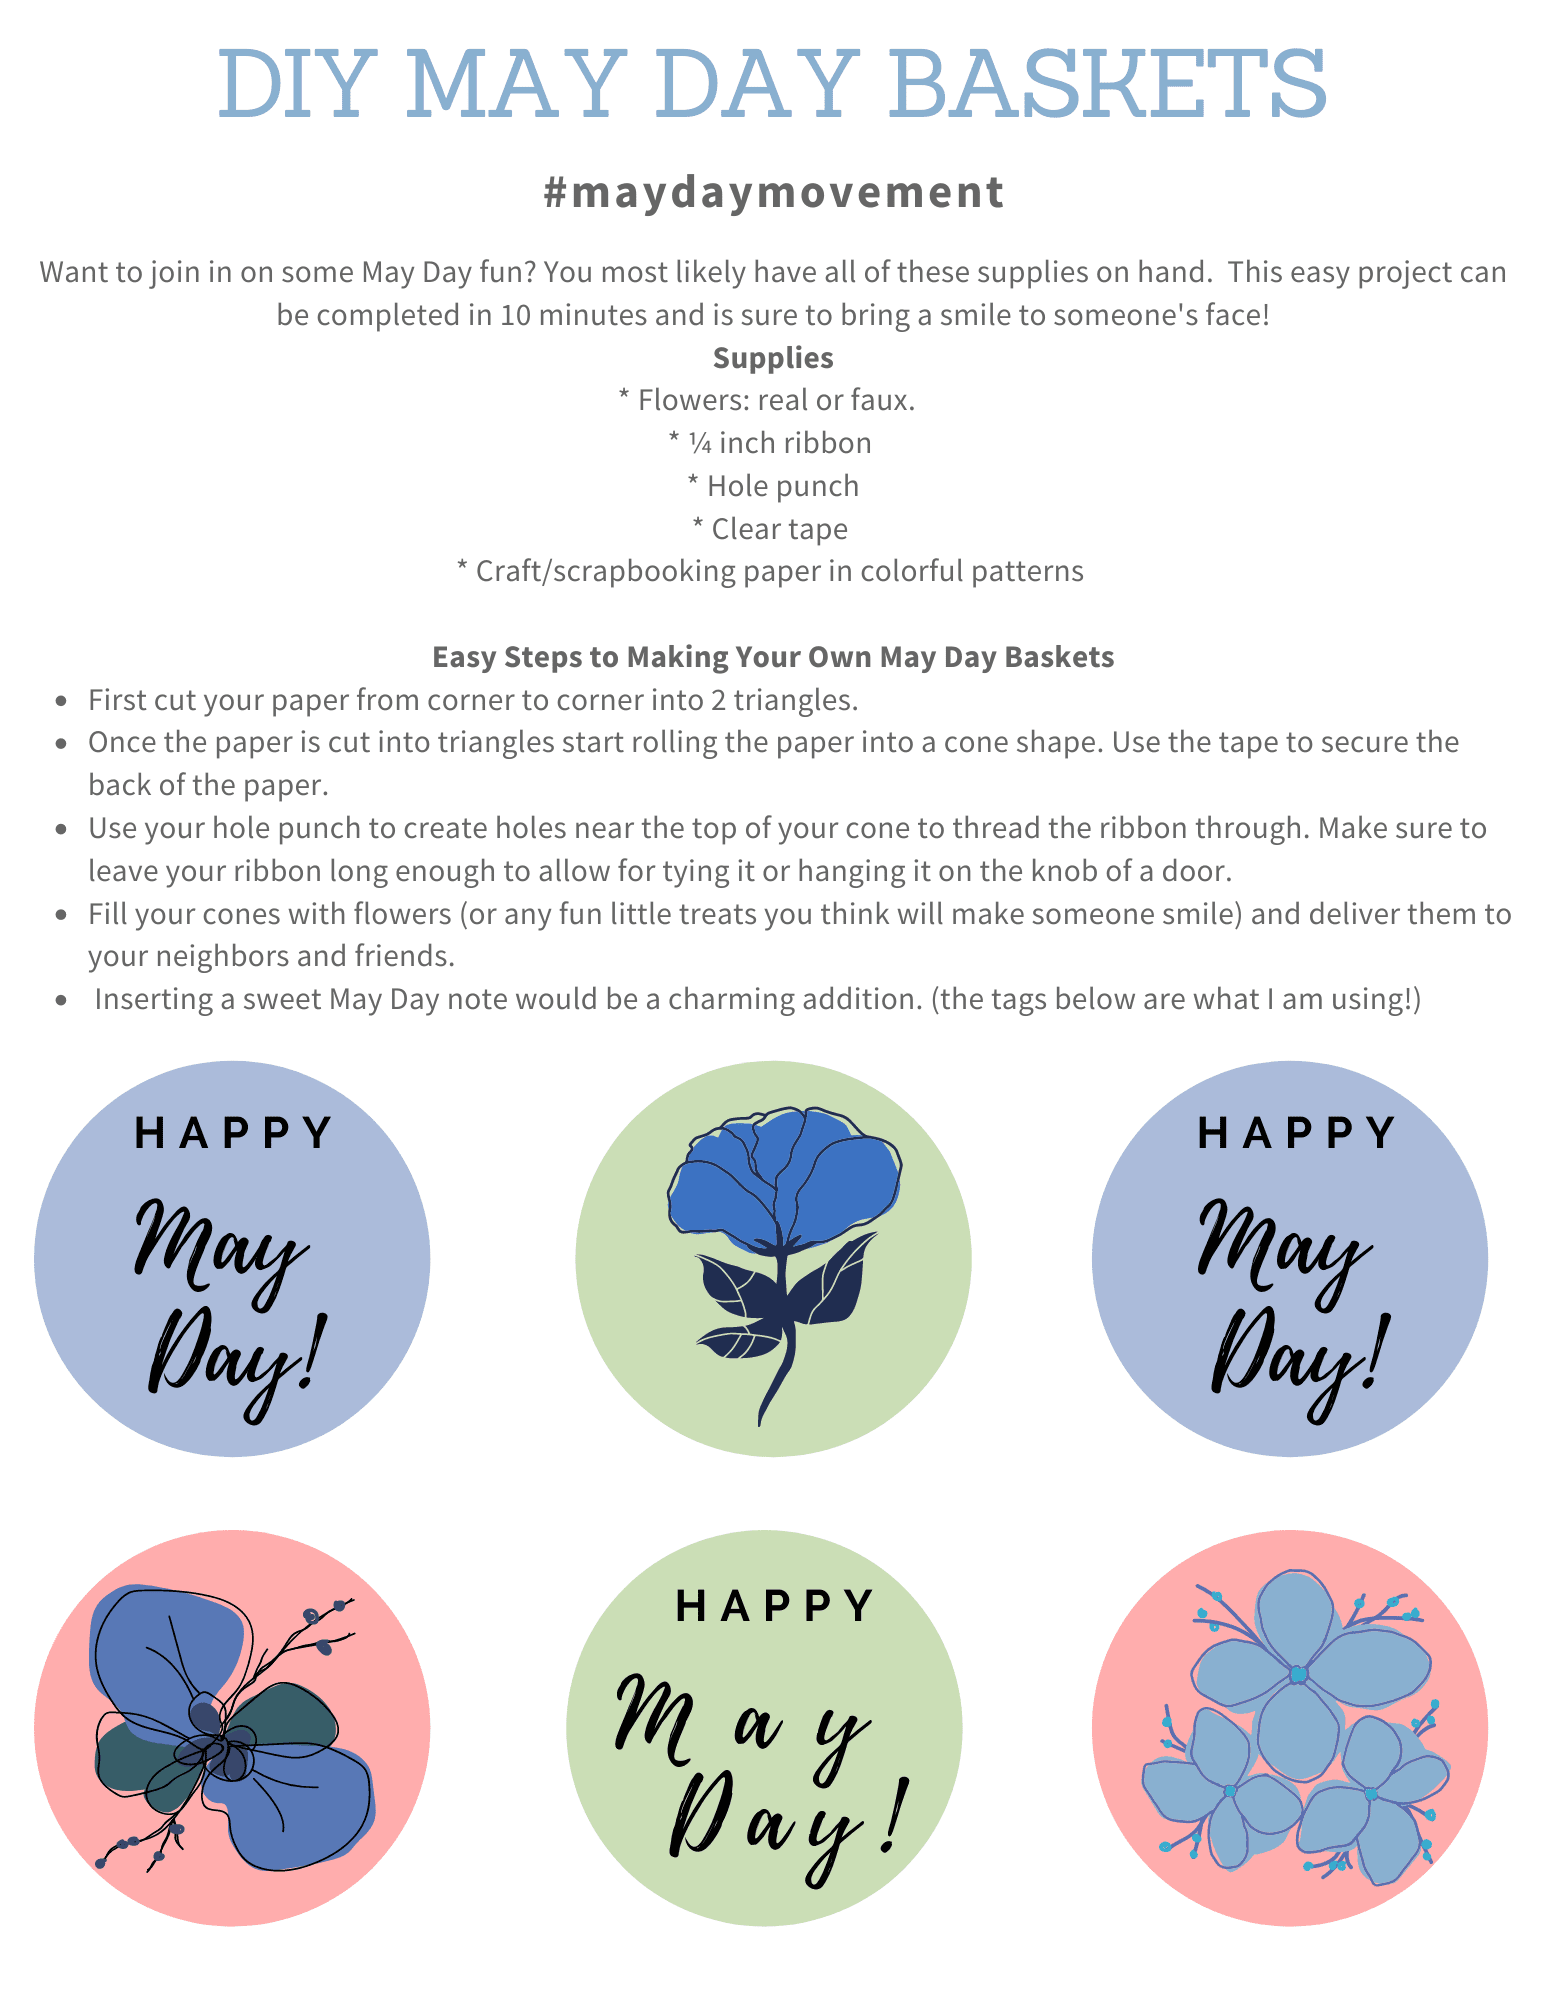 Join the May Day Movement and grab your free printable tags to make someone smile!